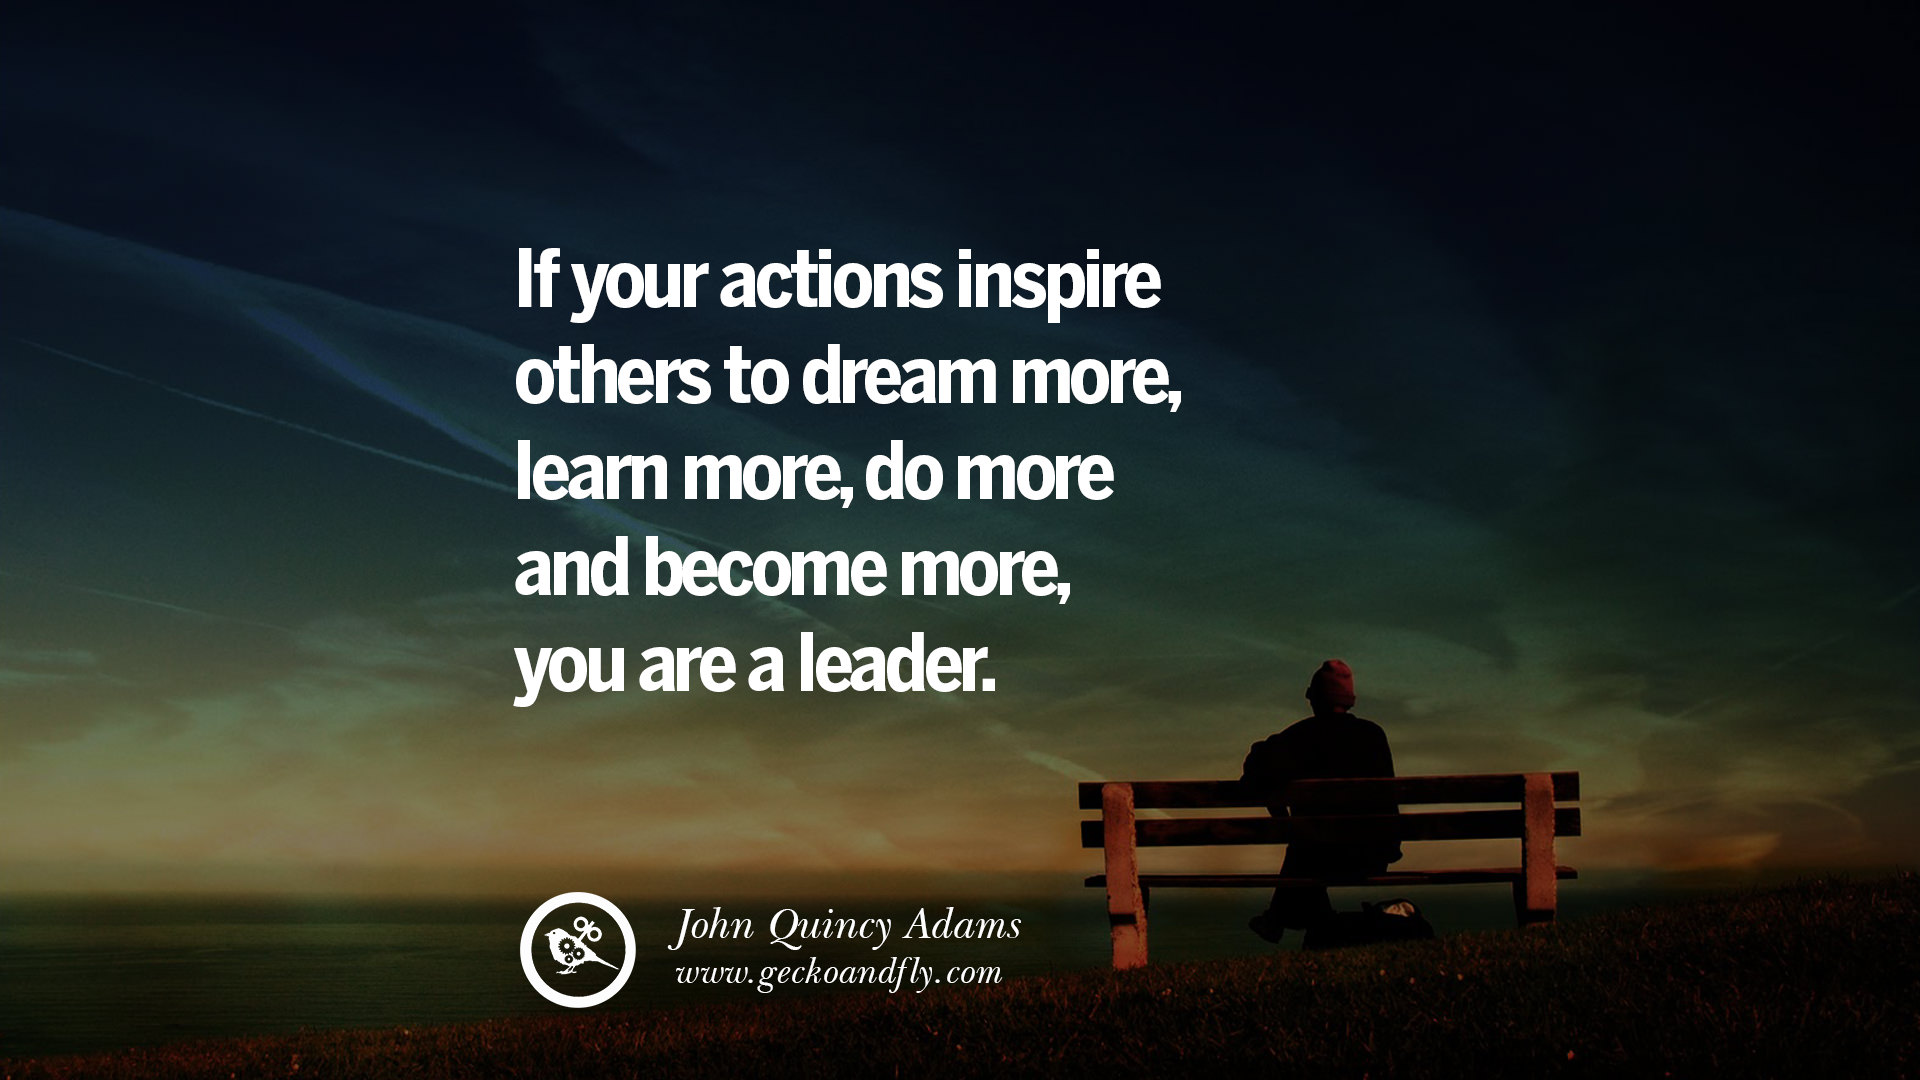 Inspiring Leadership Quotes Classy 18 Uplifting And Motivational Quotes On Management Leadership